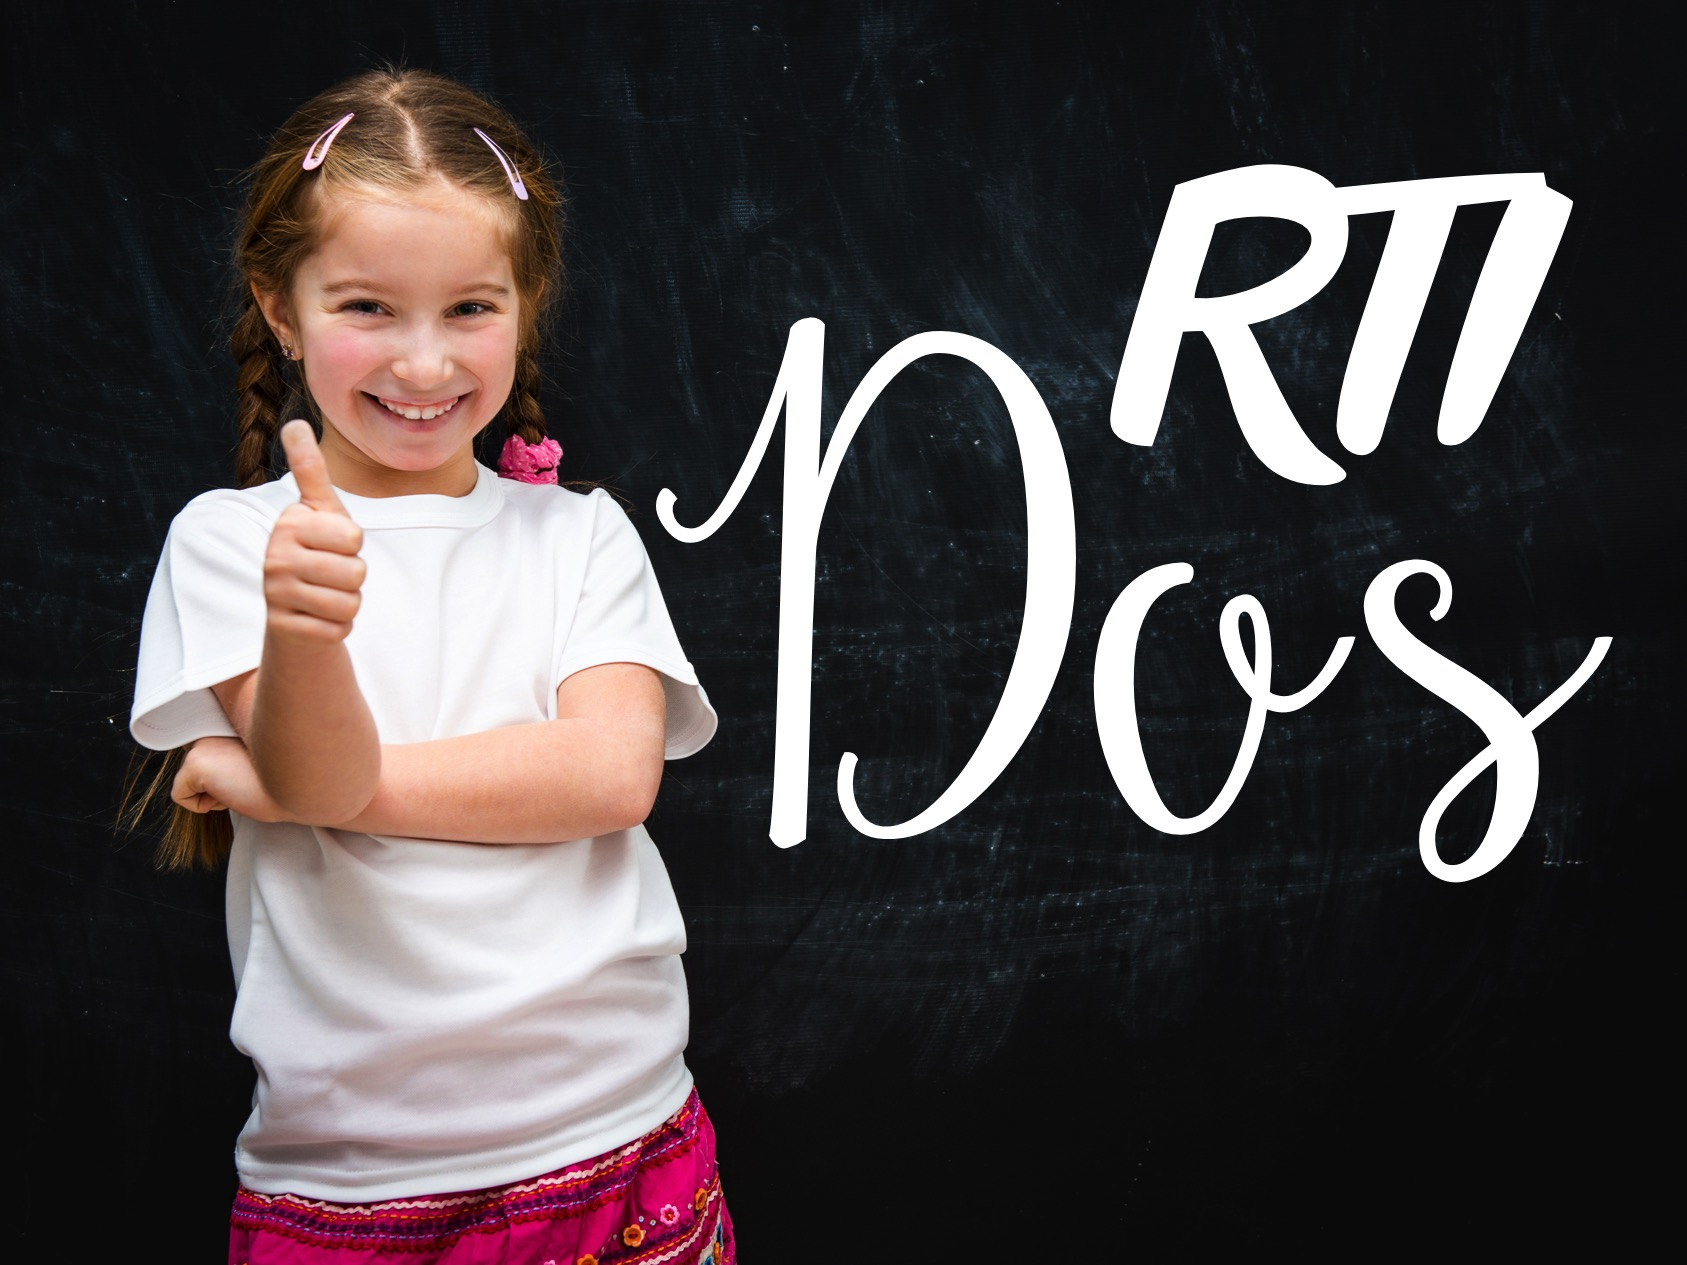 As an intervention specialist, I get lots of questions regarding rti interventions, rti forms, setting goals,  and intervention ideas.  Let's clear up some RTI and intervention mistakes.